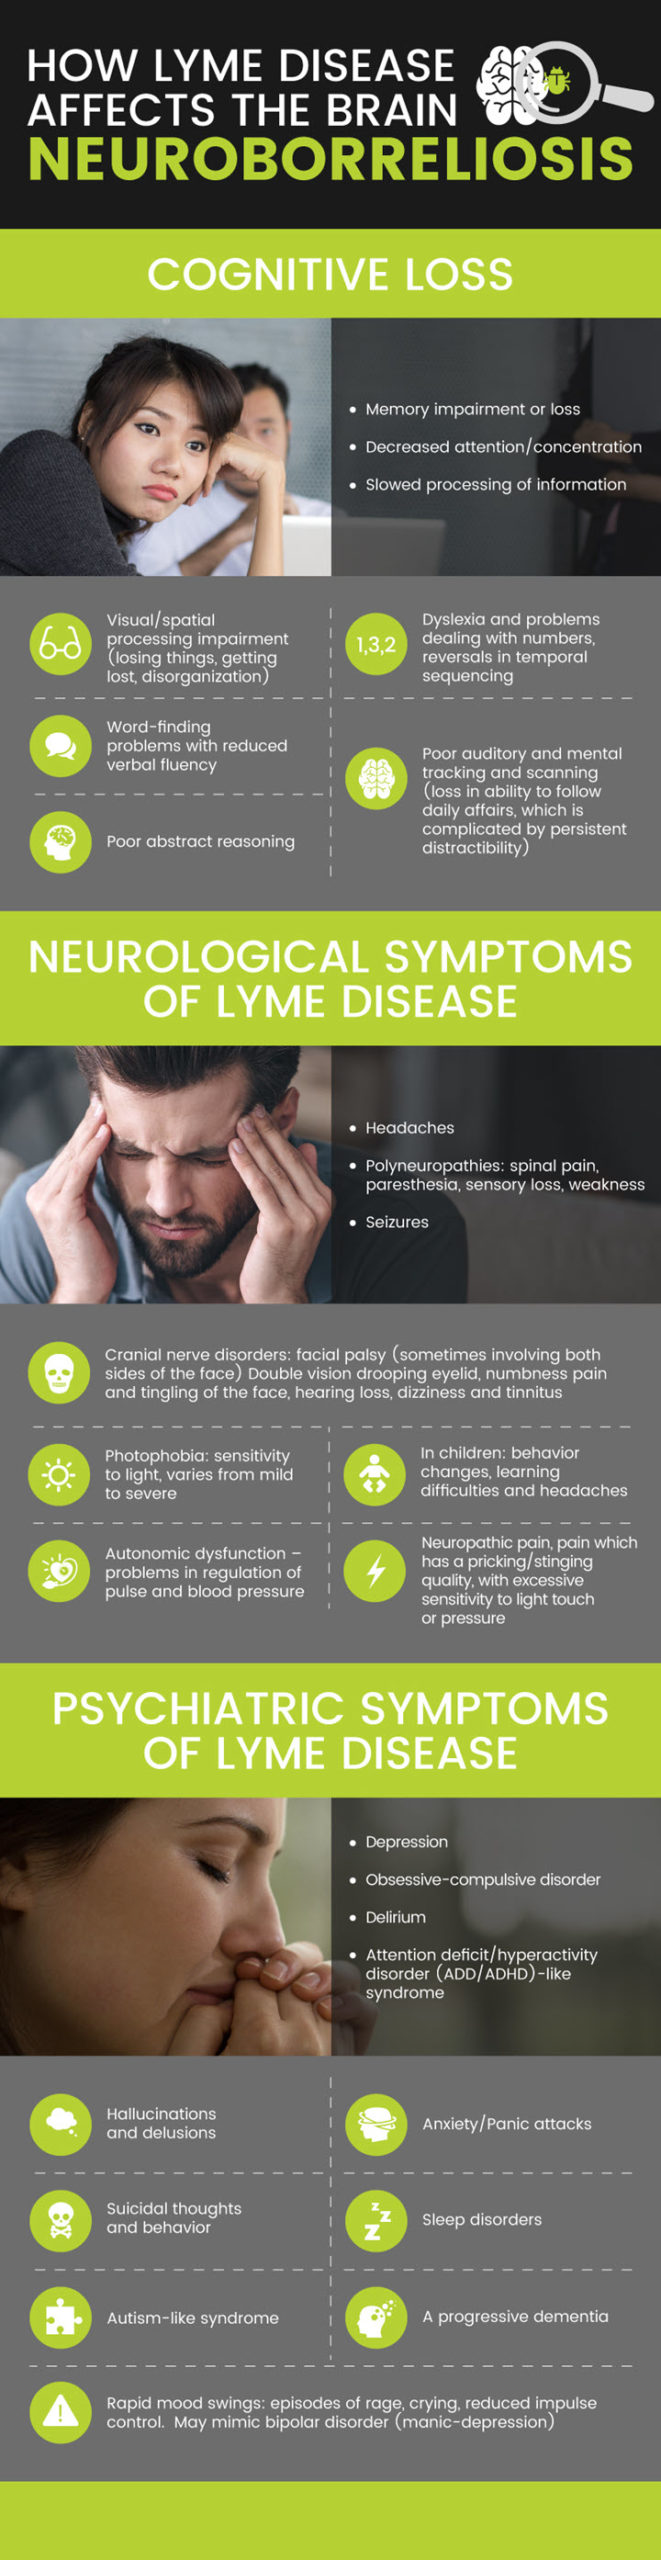 How Lyme disease affects the brain infographic